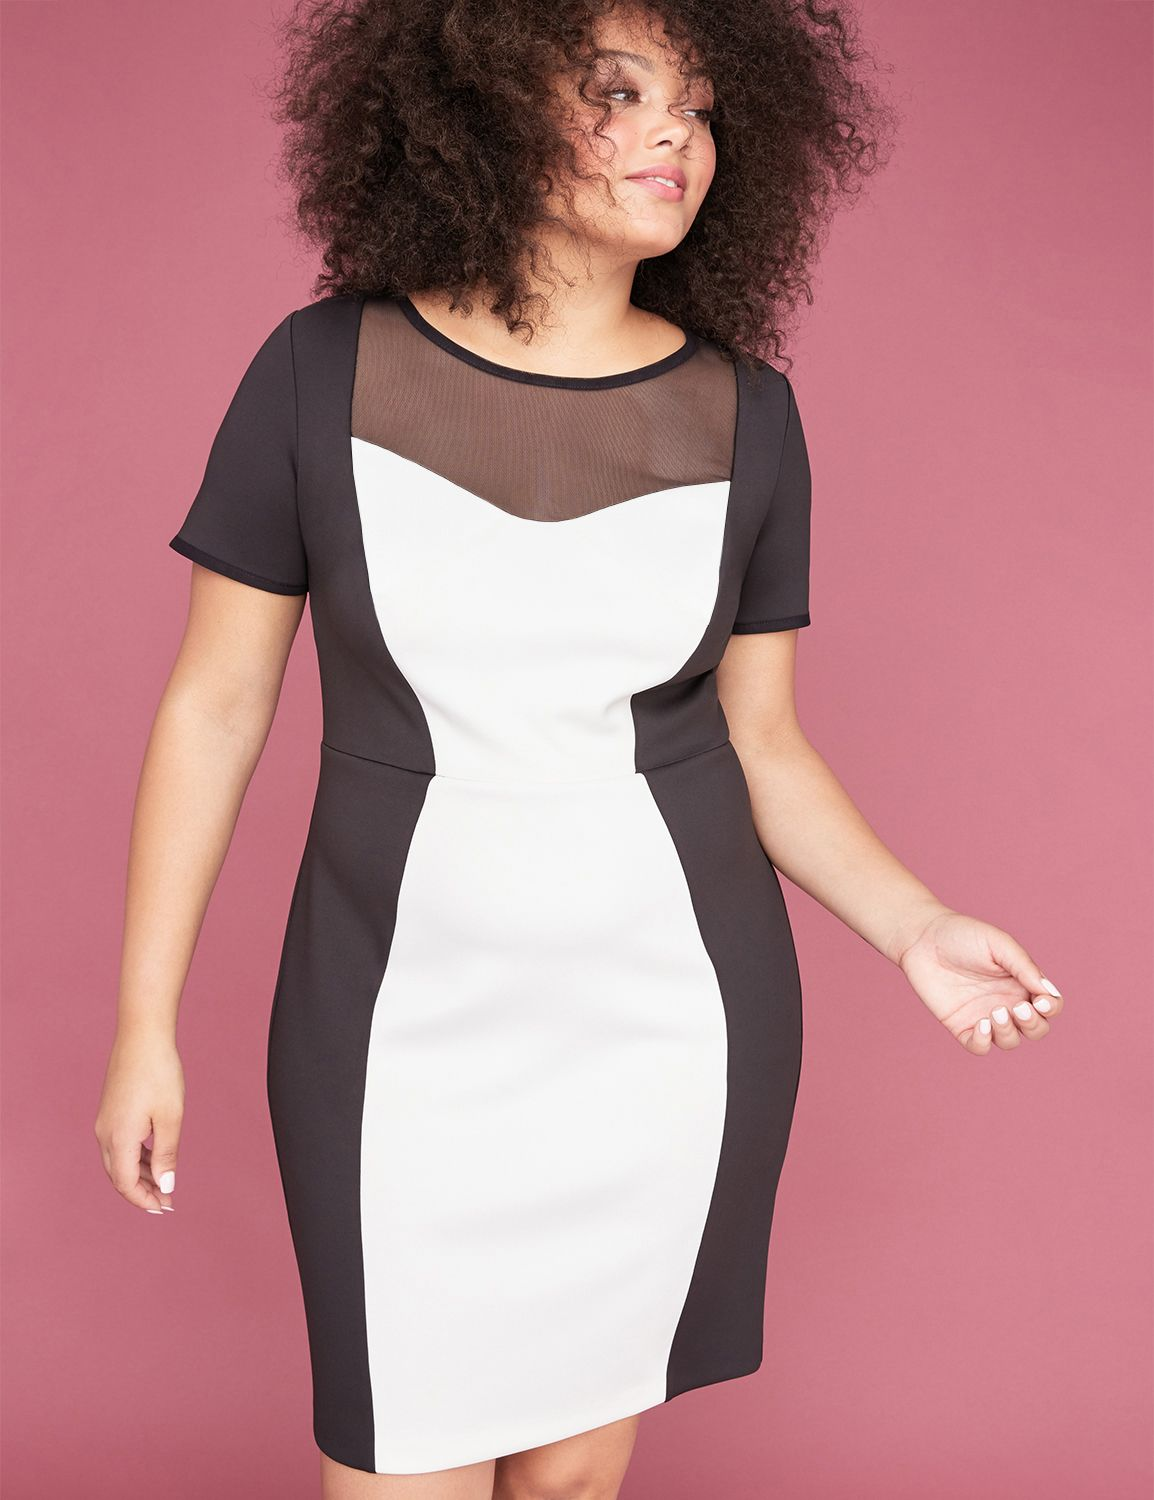 60s 70s Plus Size Dresses, Clothing, Costumes Lane Bryant Womens Colorblock Scuba Sheath Dress With Mesh Yoke 24 Black $89.95 AT vintagedancer.com